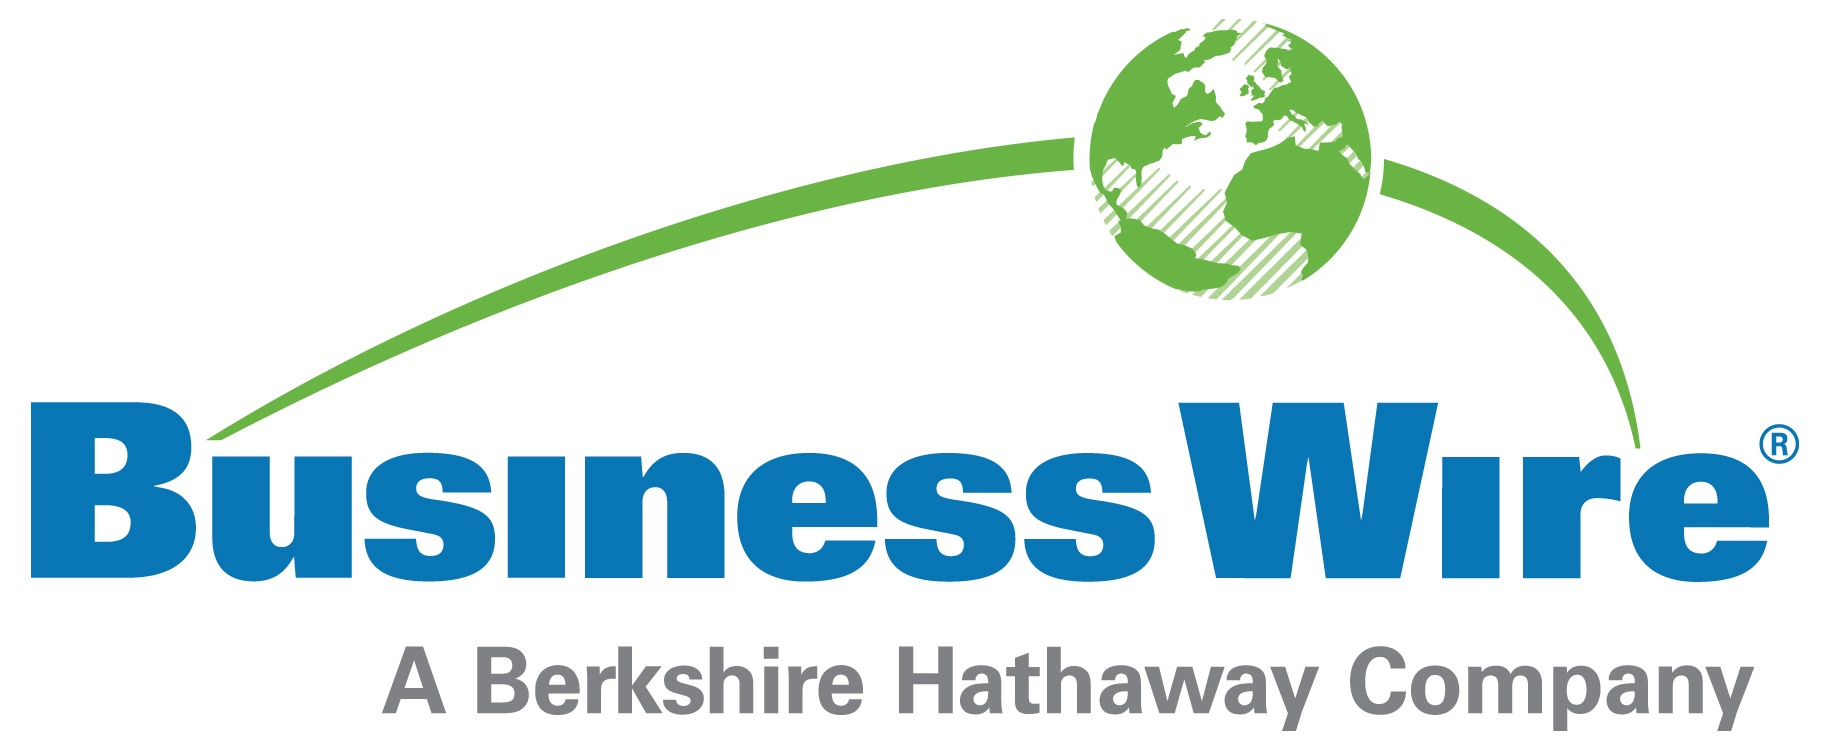 Business Wire masthead.jpg